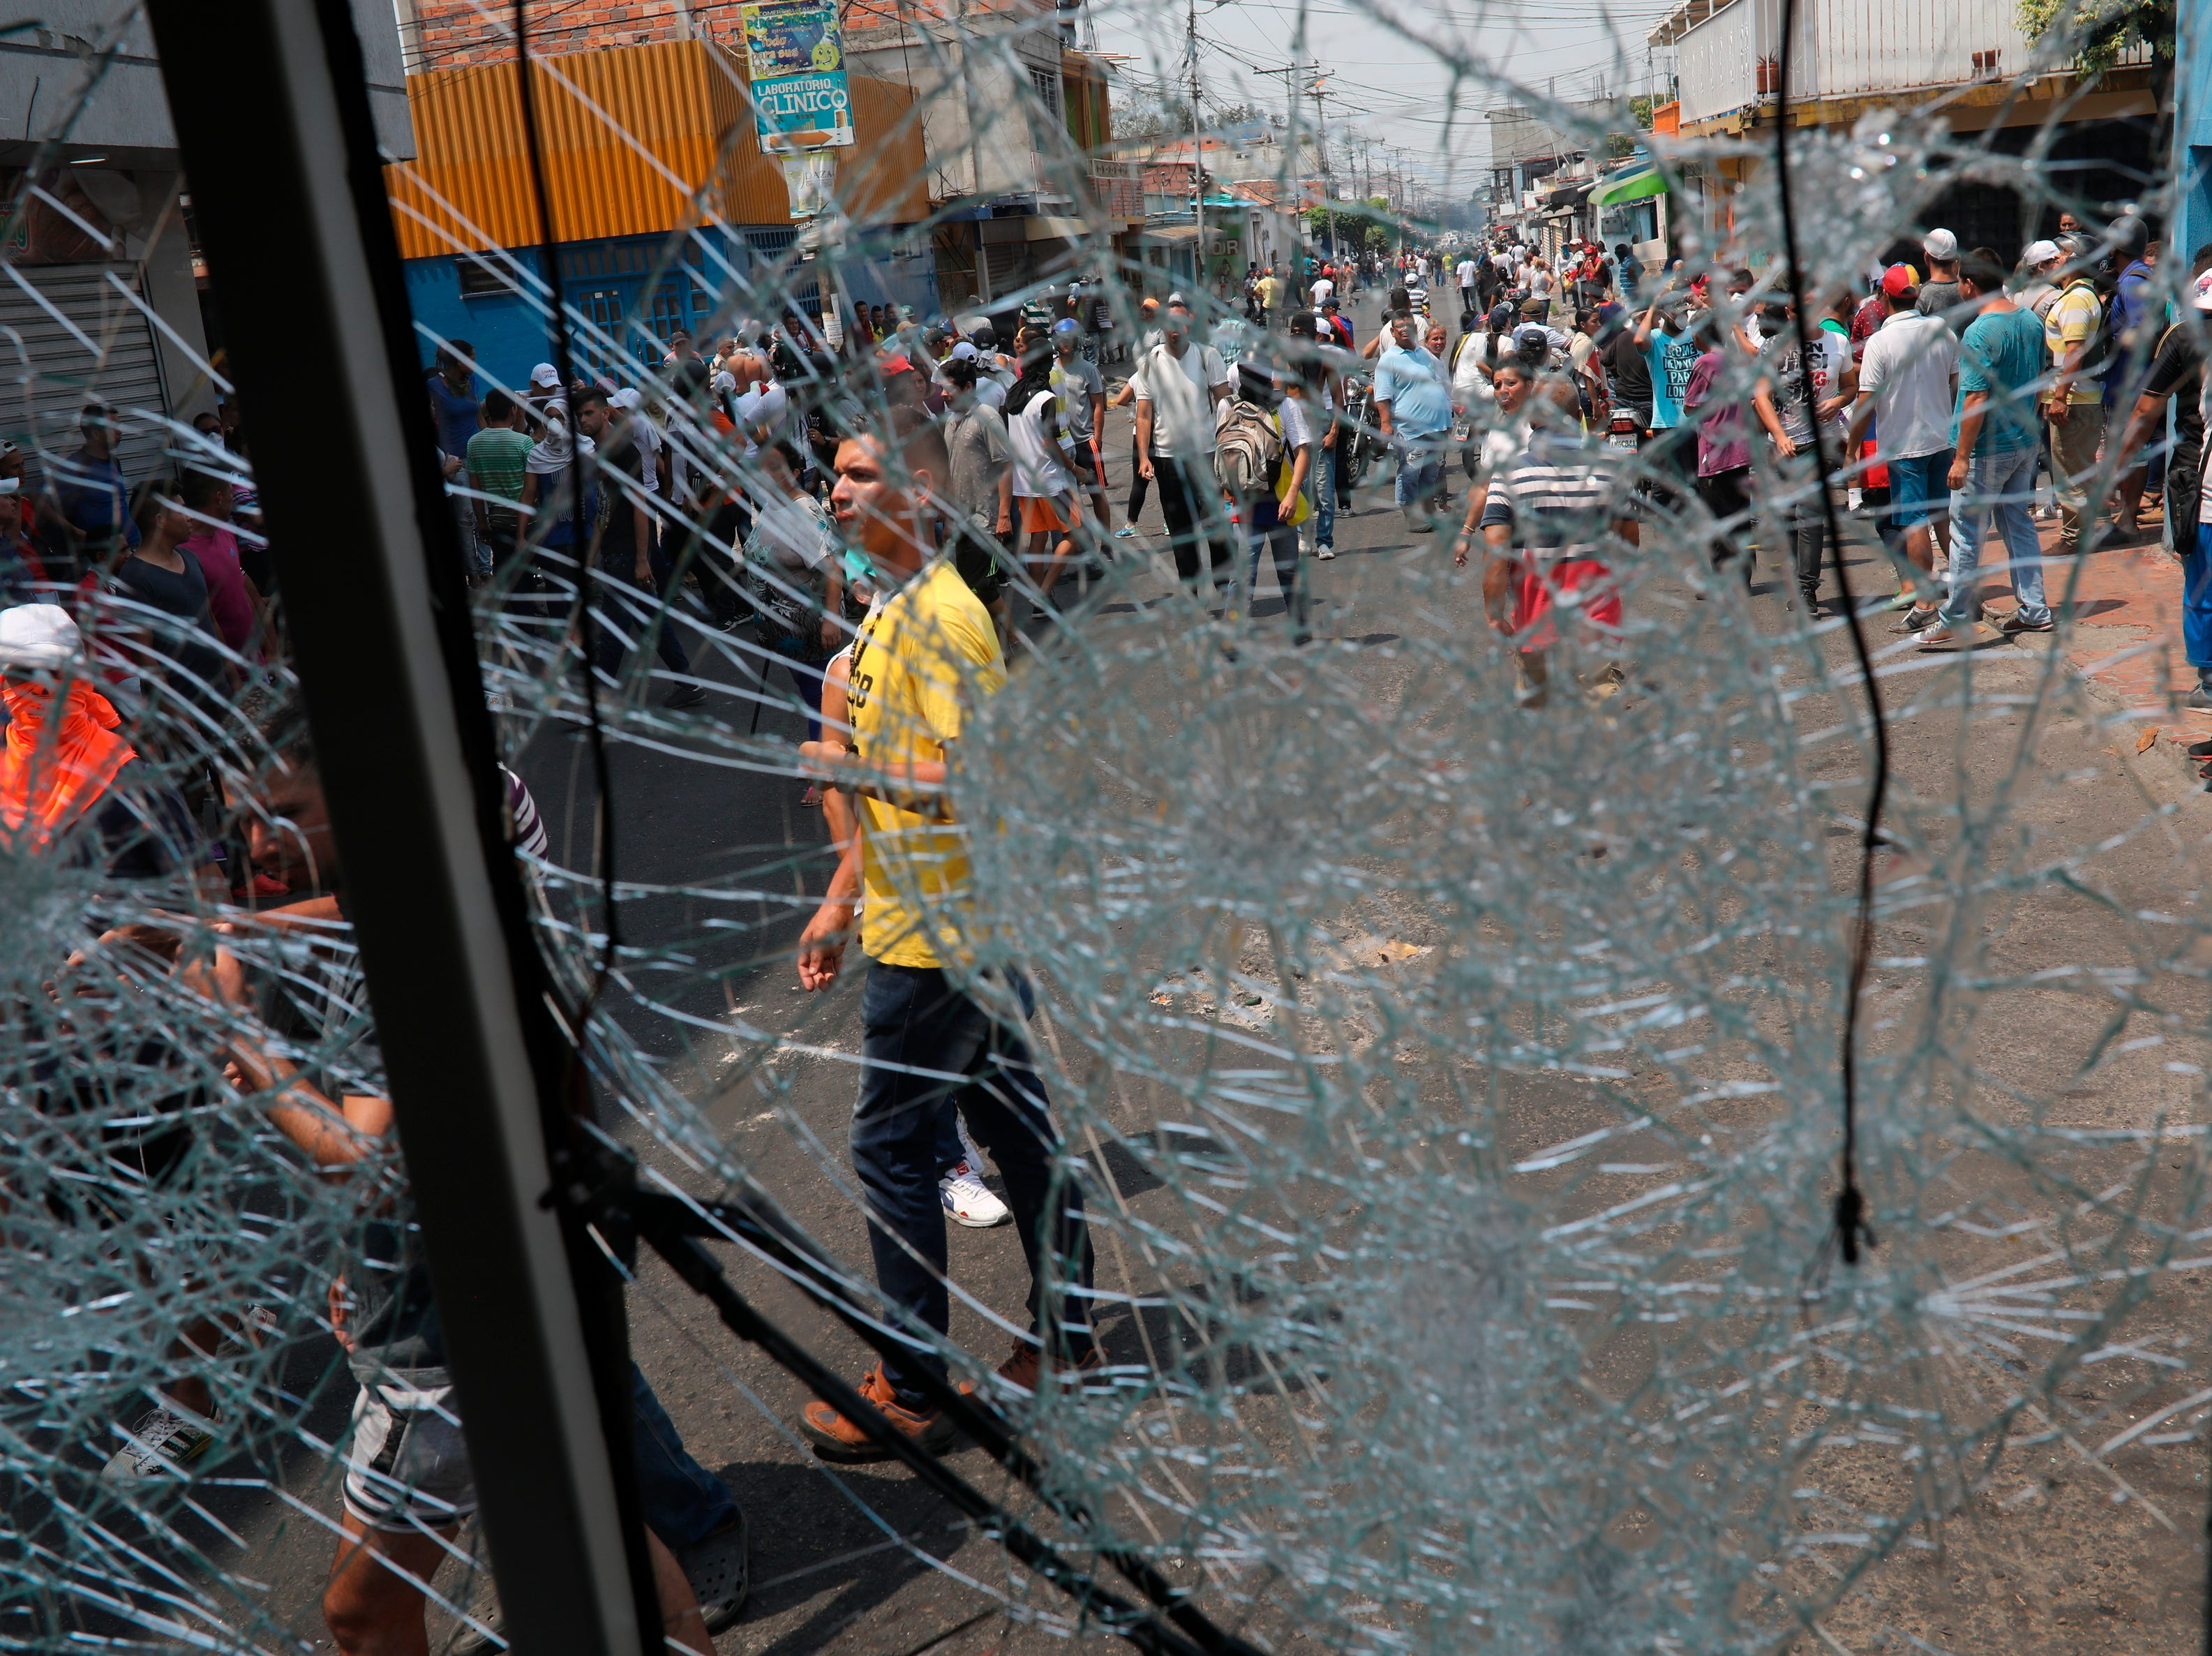 Demonstrators are seen through the cracked windshield of a torched bus during clashes with the Bolivarian National Guard in Urena, Venezuela, near the border with Colombia, Saturday, Feb. 23, 2019.